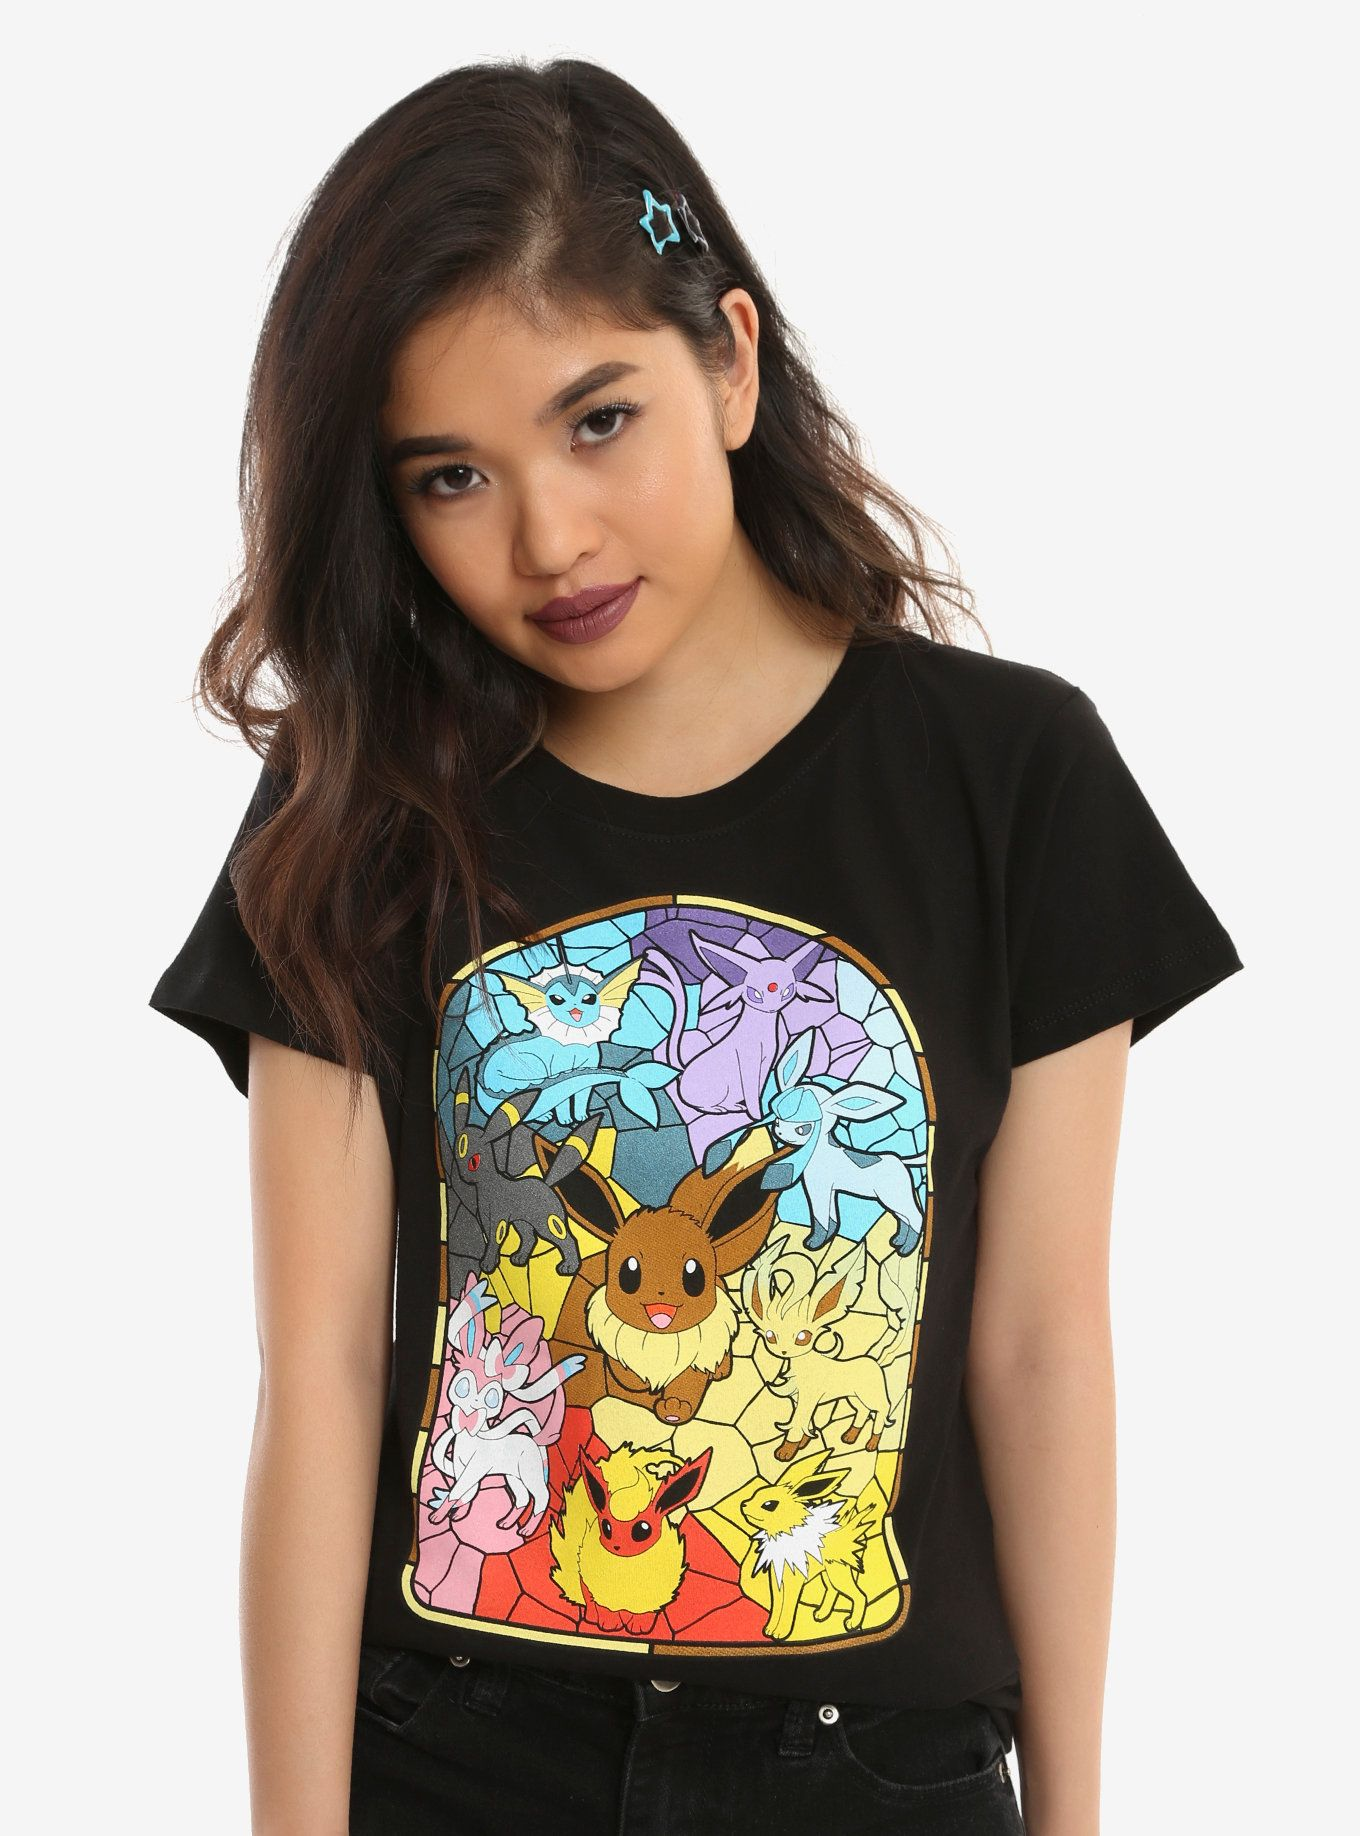 af15d471 Catch all the evolutions of Eevee with this fitted black tee from Pokemon .  The front screen features a stained glass style graphic with a colorful ...